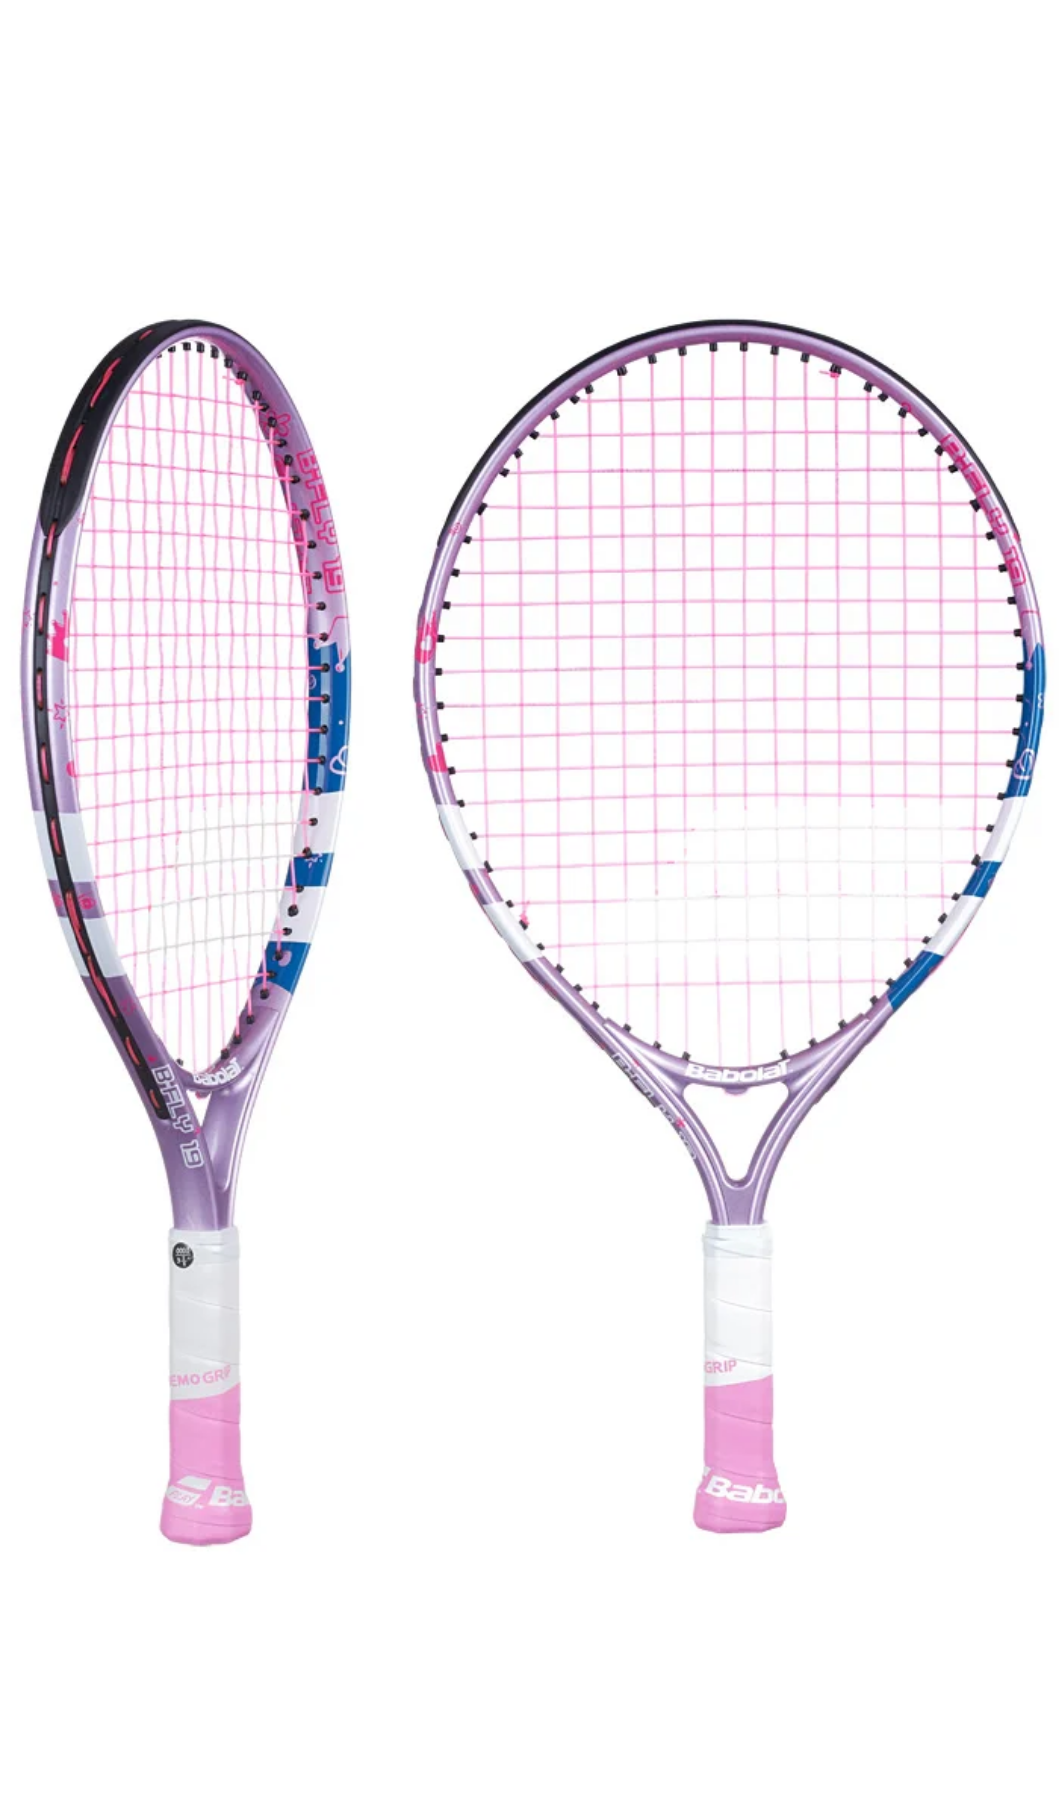 Babolat Fly Junior Racquet For Kids - Ages 3-5 Years